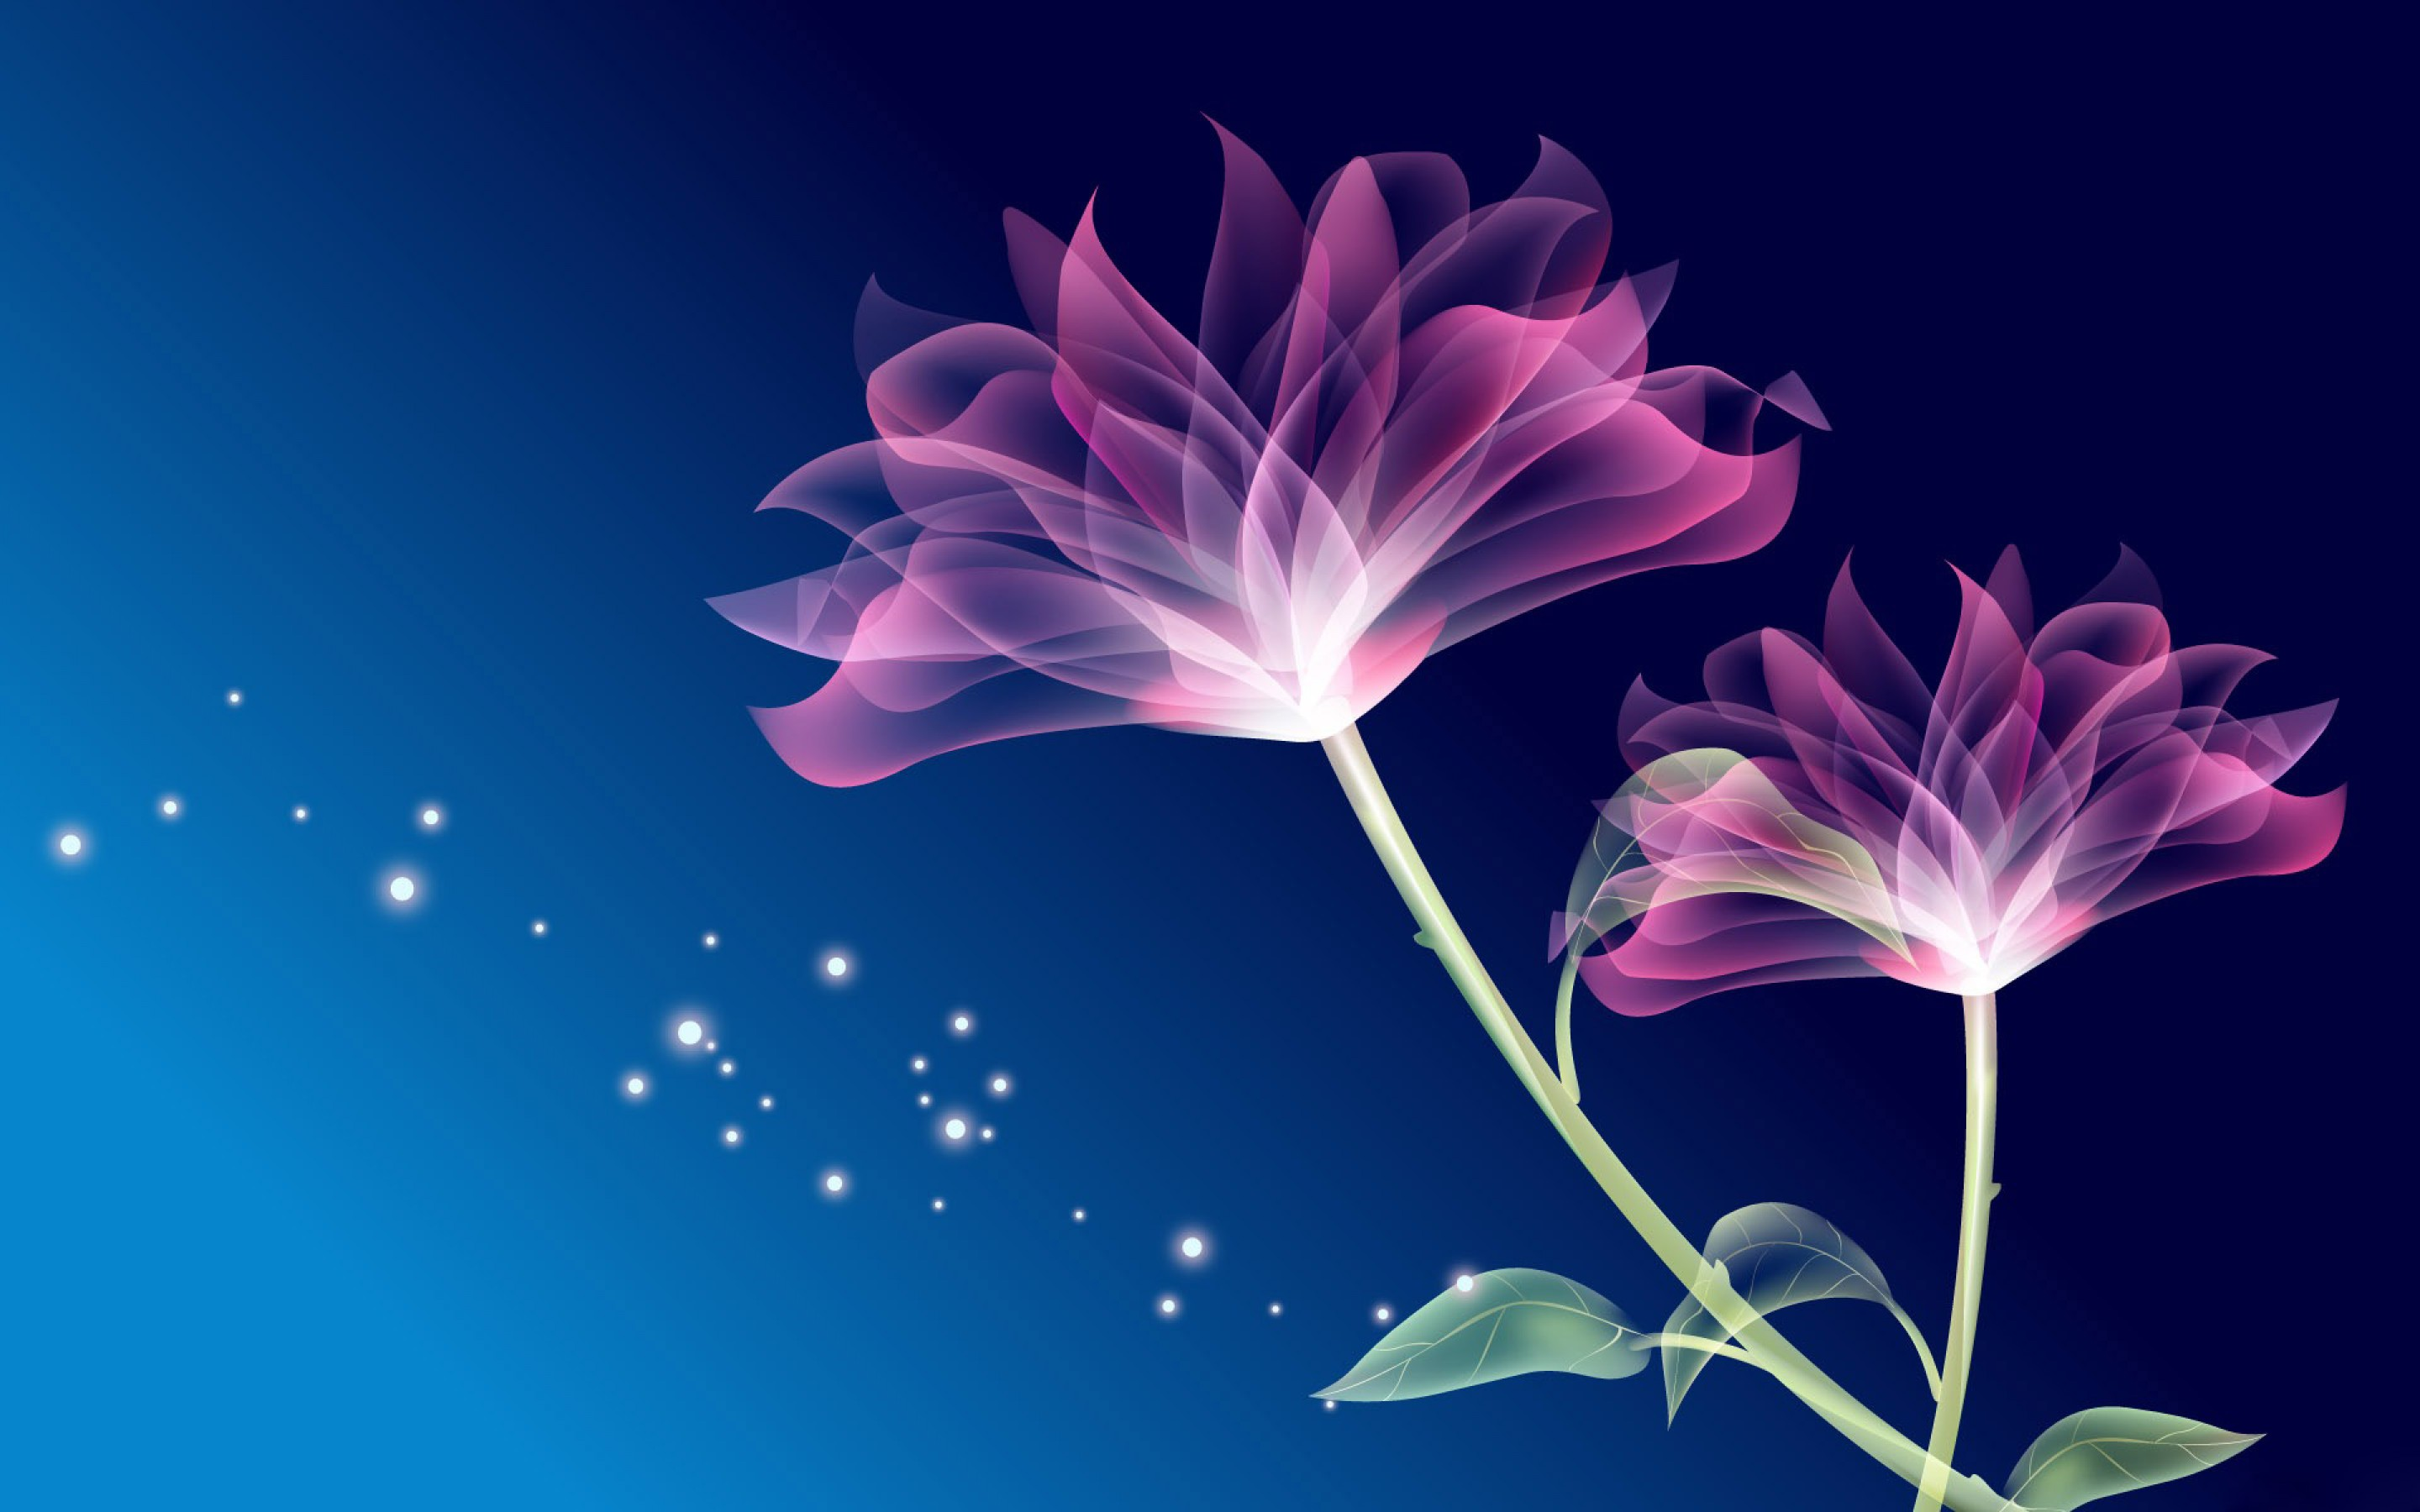 Animated flowers pictures images free download Animated Flowers | Free Download Clip Art | Free Clip Art | on ... free download